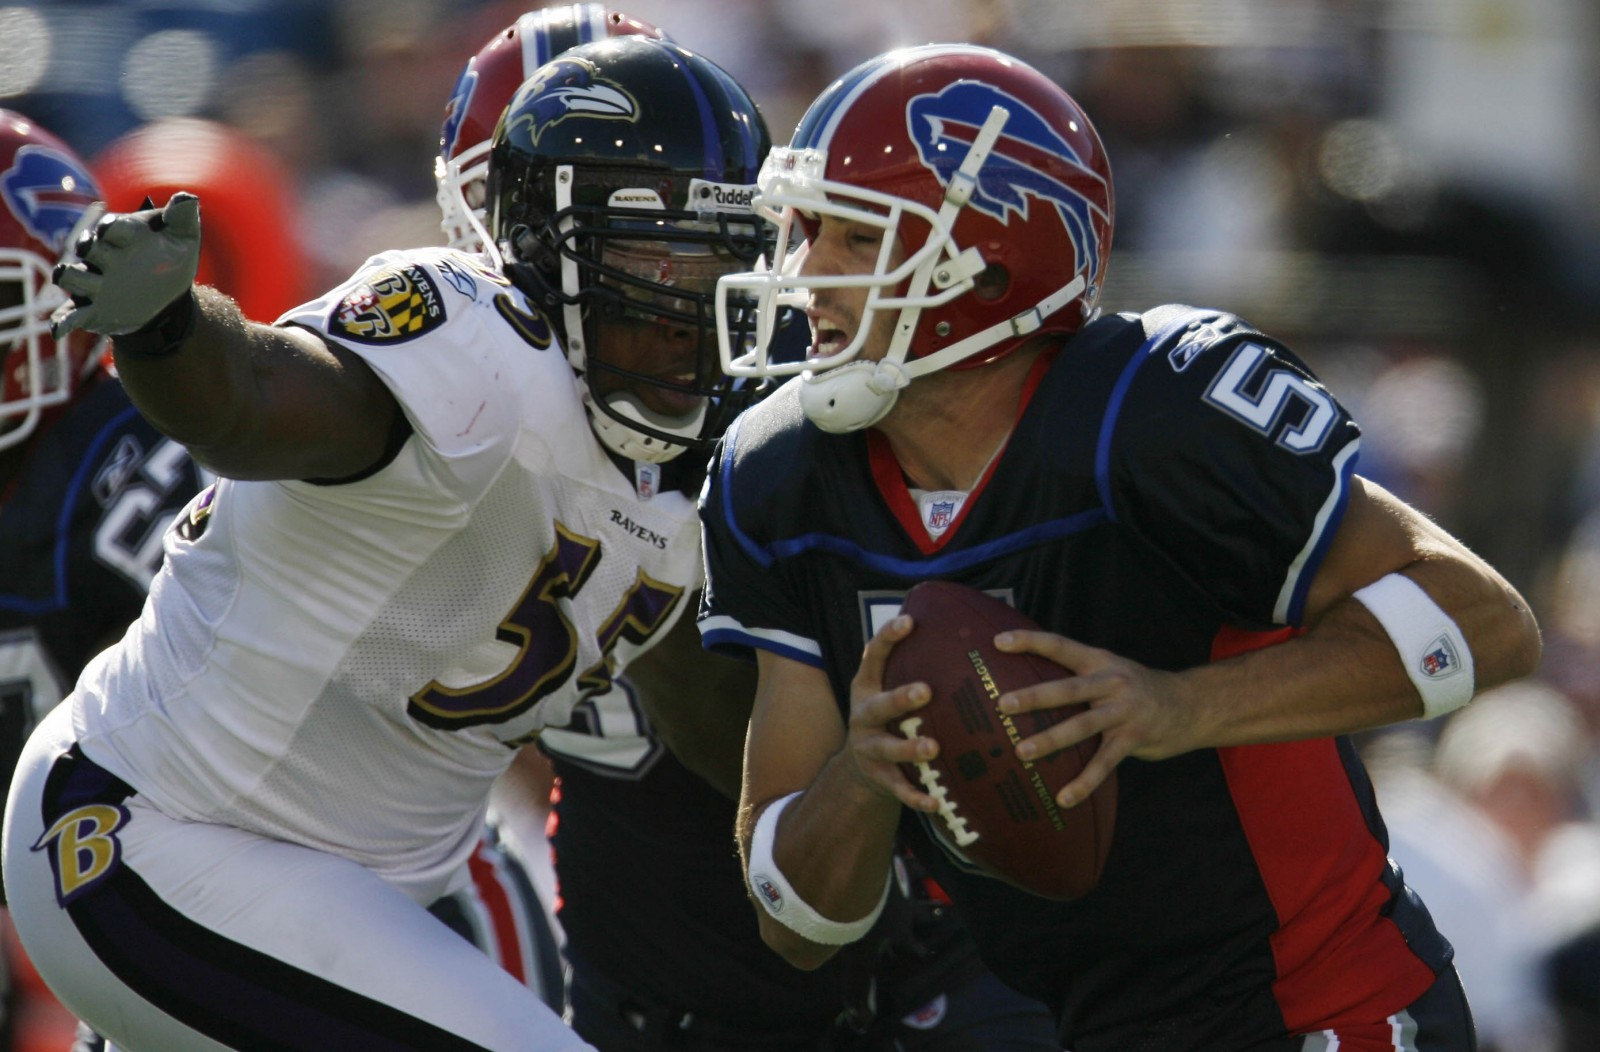 Trent Edwards was the Bills' starting quarterback the last time they played on Monday Night Football. (Buffalo News file photo)